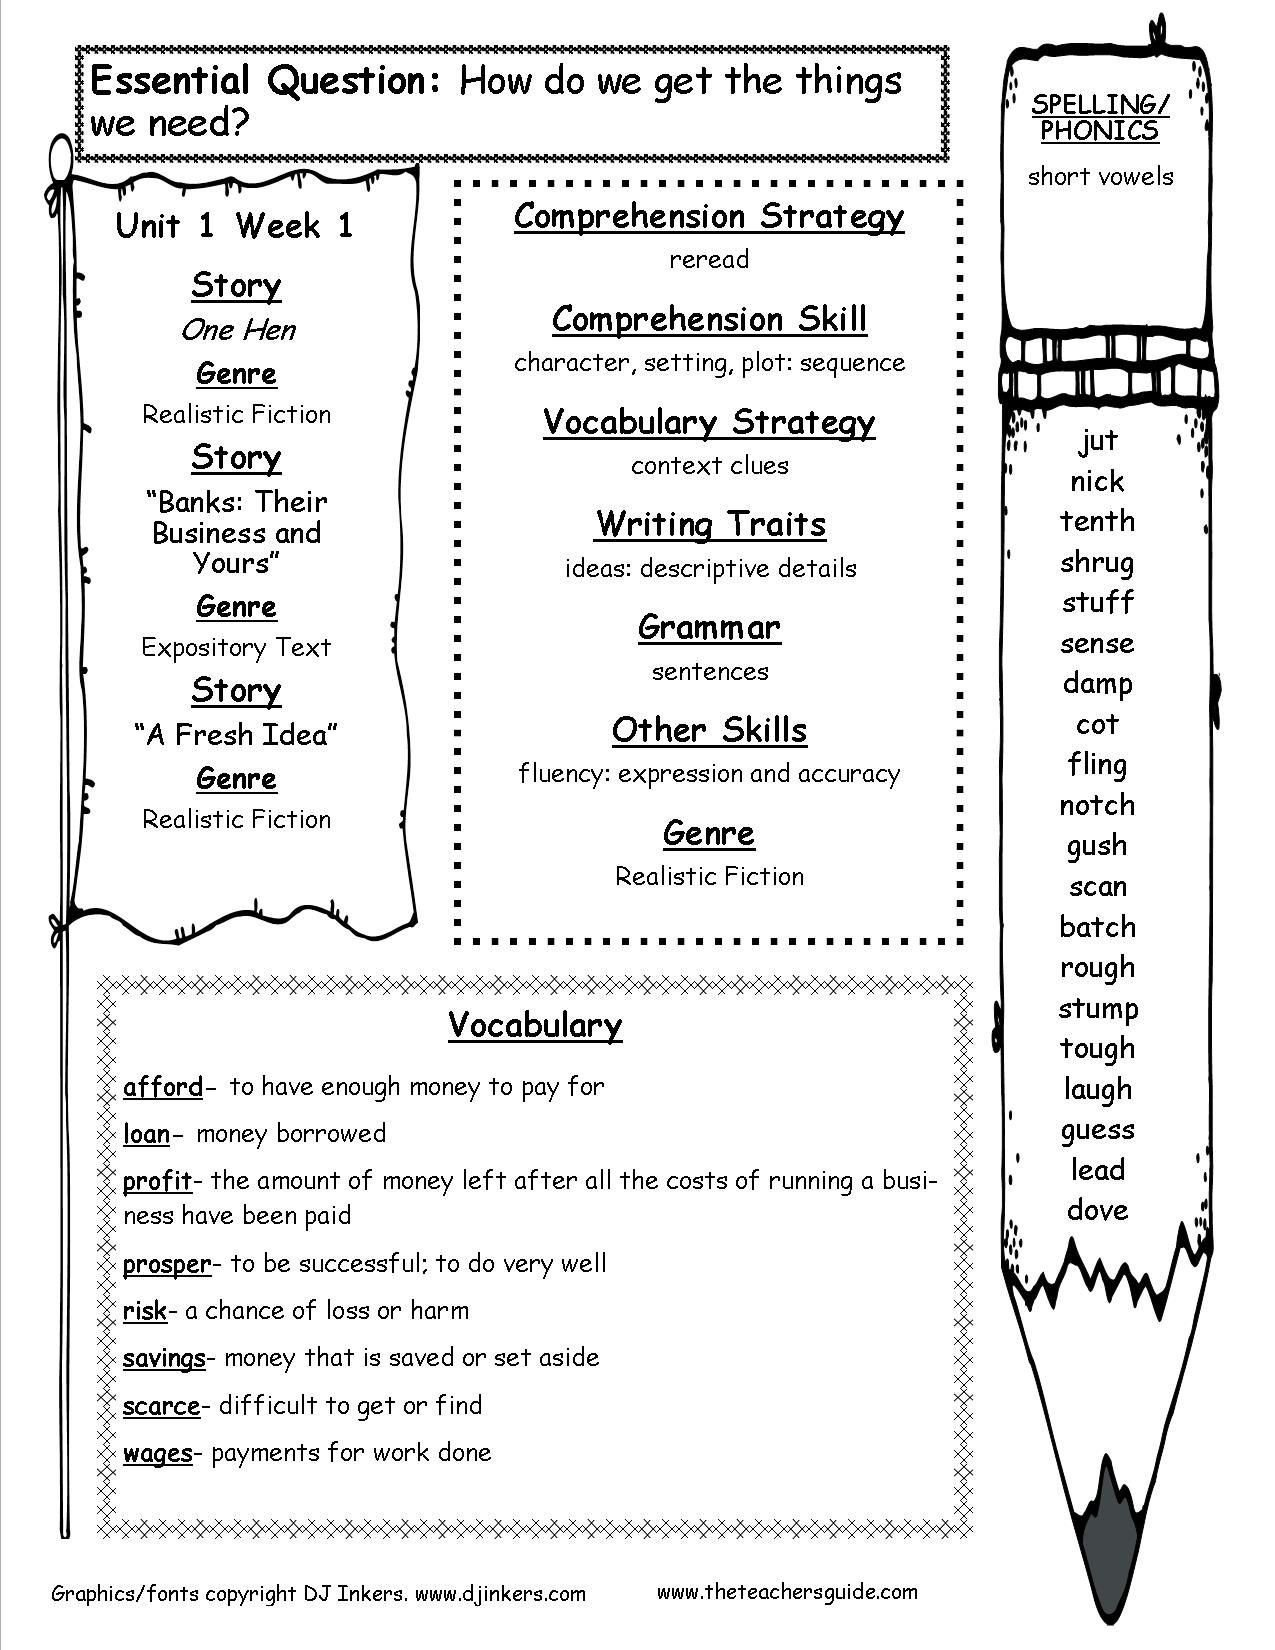 character setting plot worksheet mcgraw hill wonders fifth grade resources and printouts of character setting plot worksheet